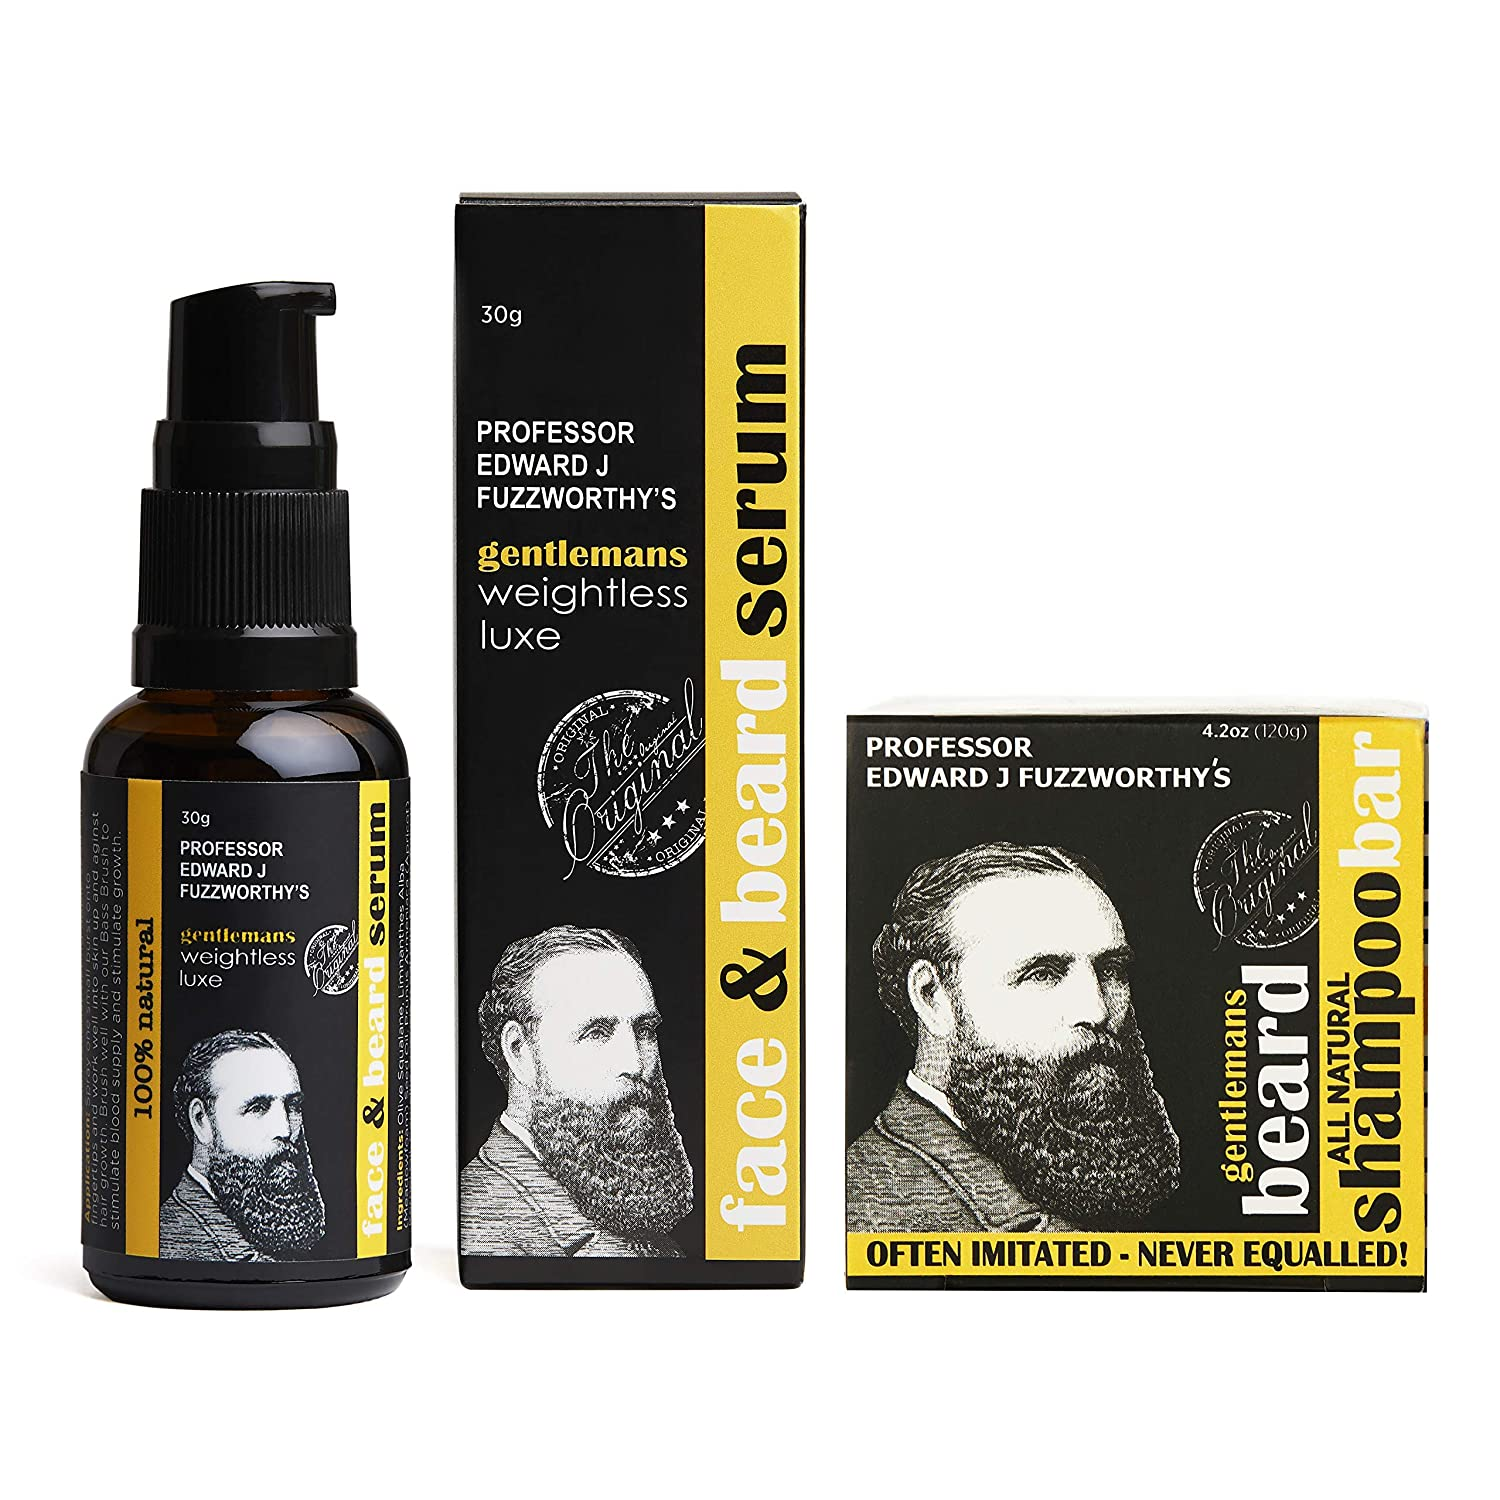 Professor Fuzzworthy's Beard SHAMPOO & NEW Face & Beard Oil Serum Kit for All Hair Types | Best Gift Set for Men | 100% Natural Essential Oils & Ingredients | Zero Waste Sulfate Paraben Plastic Free